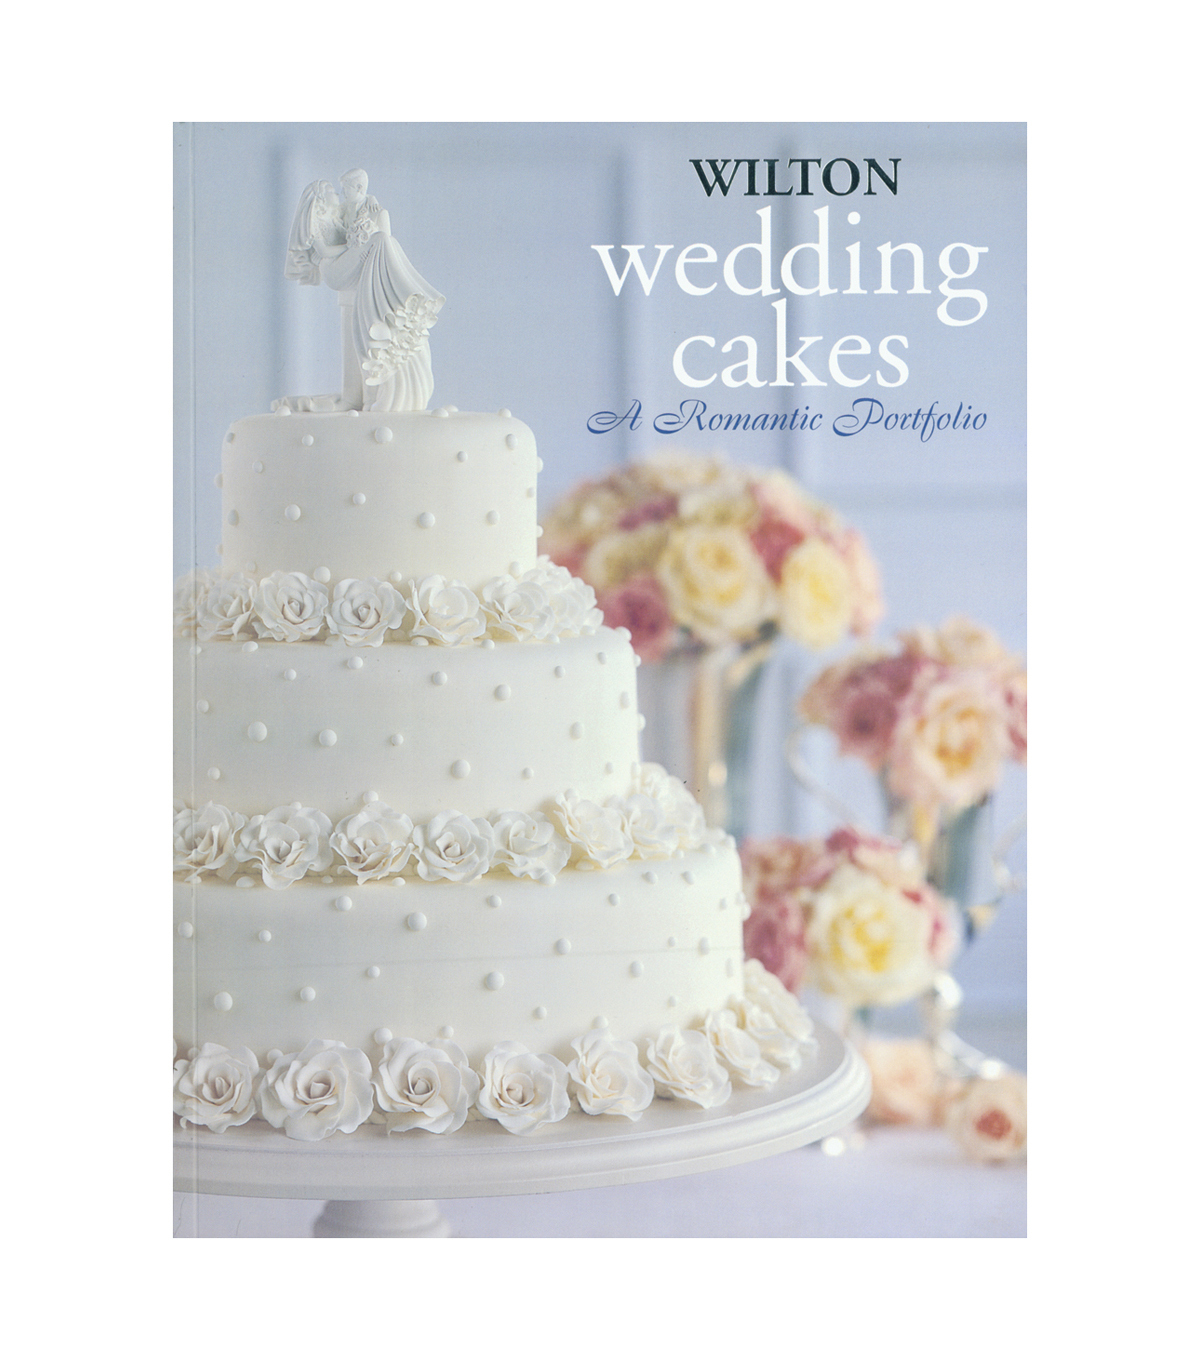 Wilton Books-Wedding Cakes A Romantic Portfolio